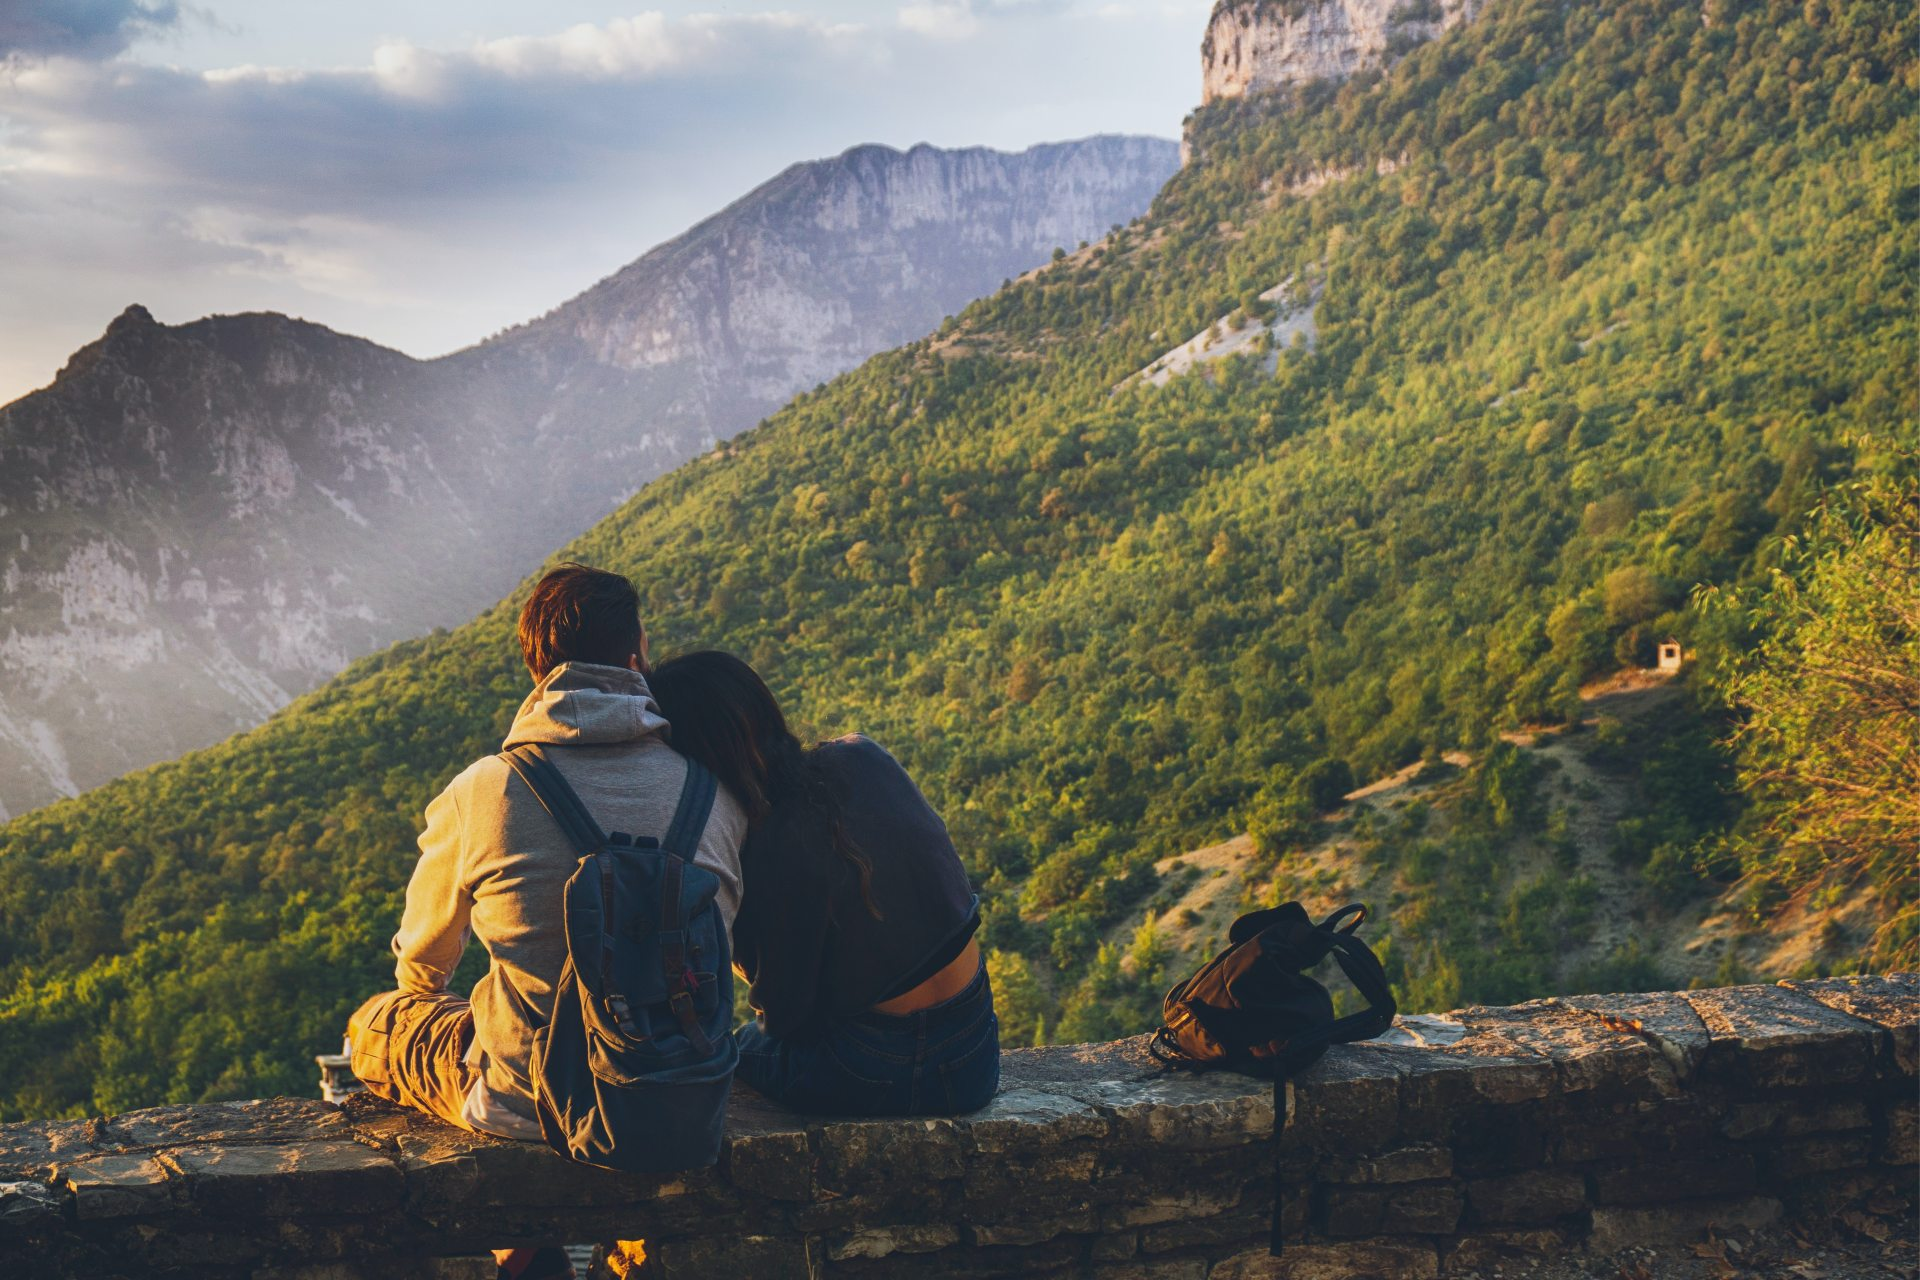 Couples Sitting in While Facing Mountain